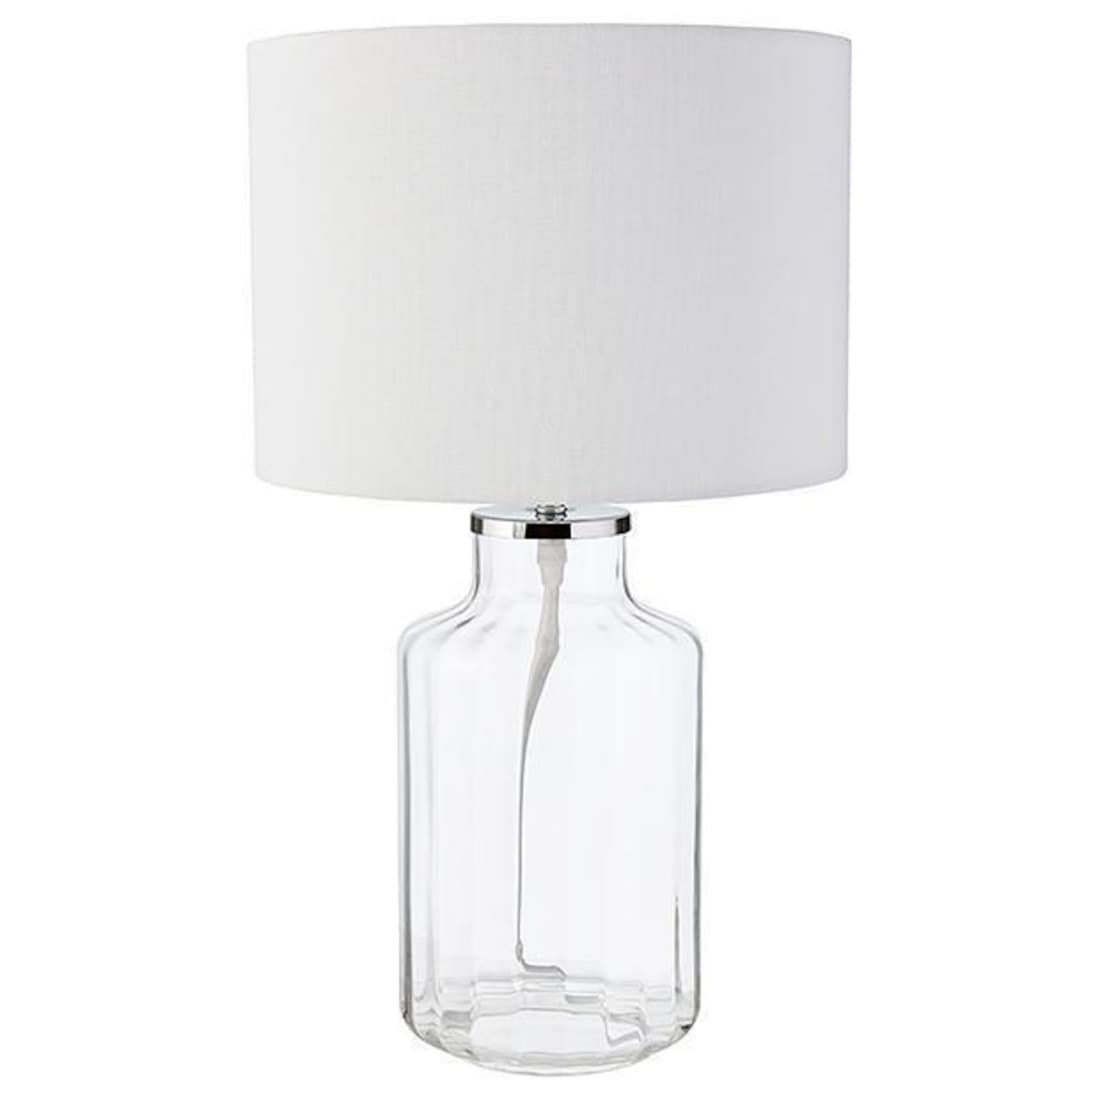 Ivy Glass Table Lamp Target Australia Glass Table Lamp Glass